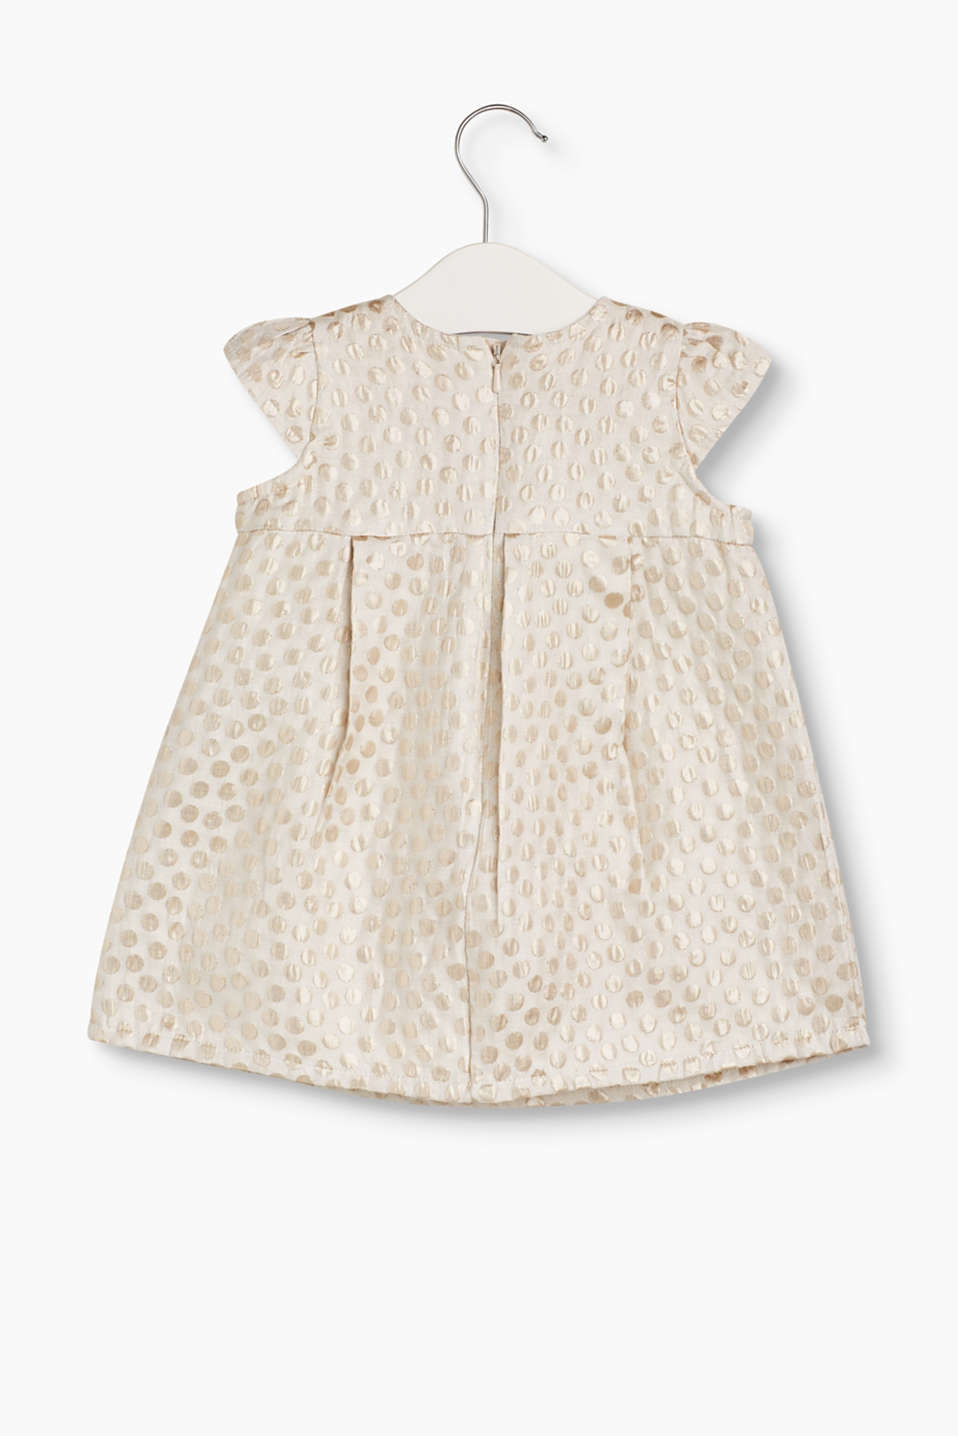 Dress with a shimmering polka dot jacquard